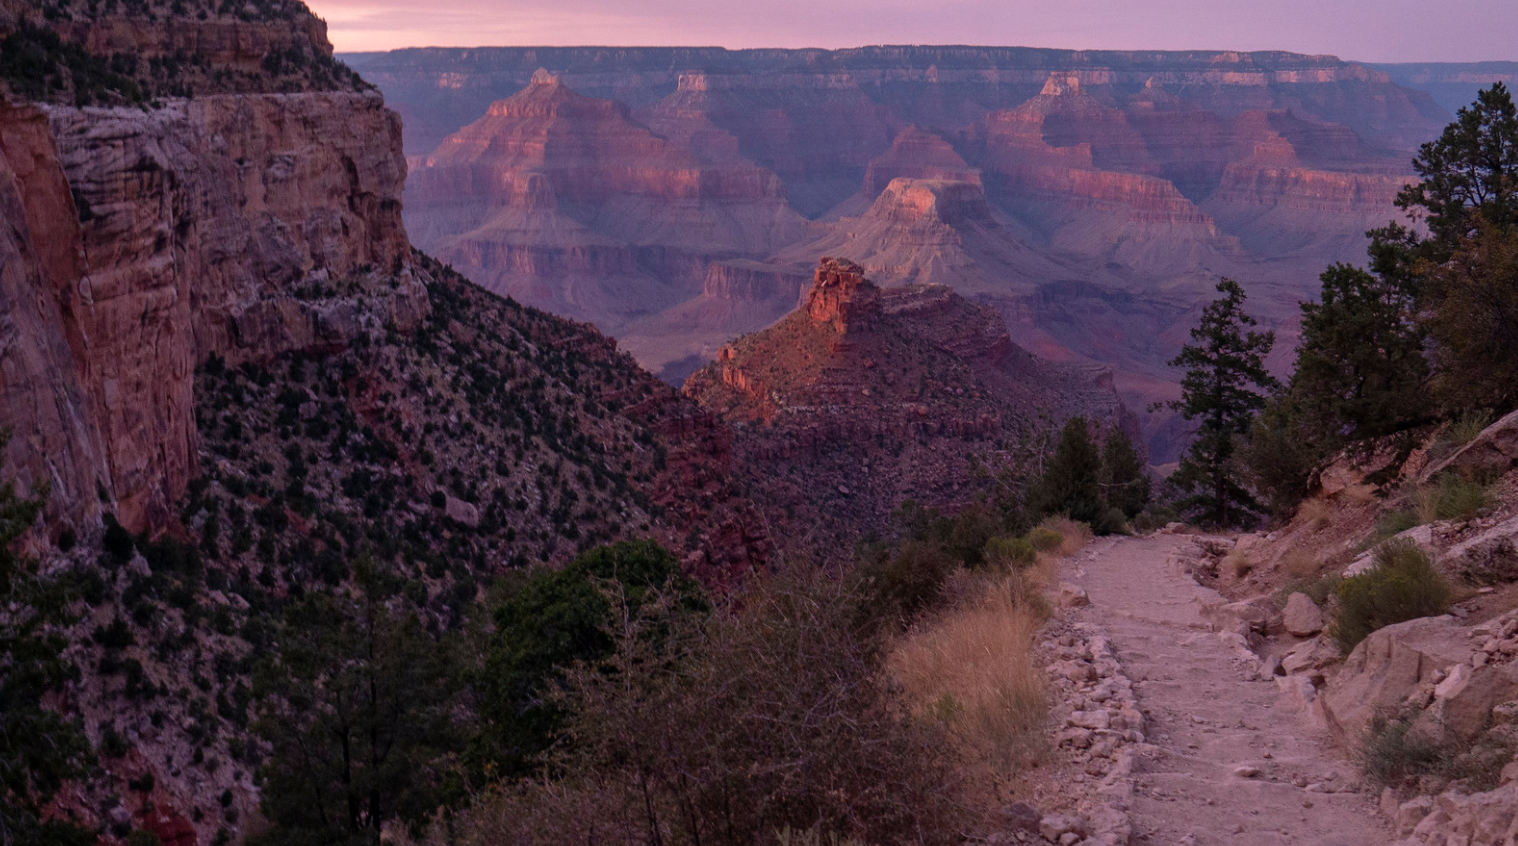 Grand Canyon S South Rim To Fully Reopen On June 5 North Rim To Reopen With Some Limits